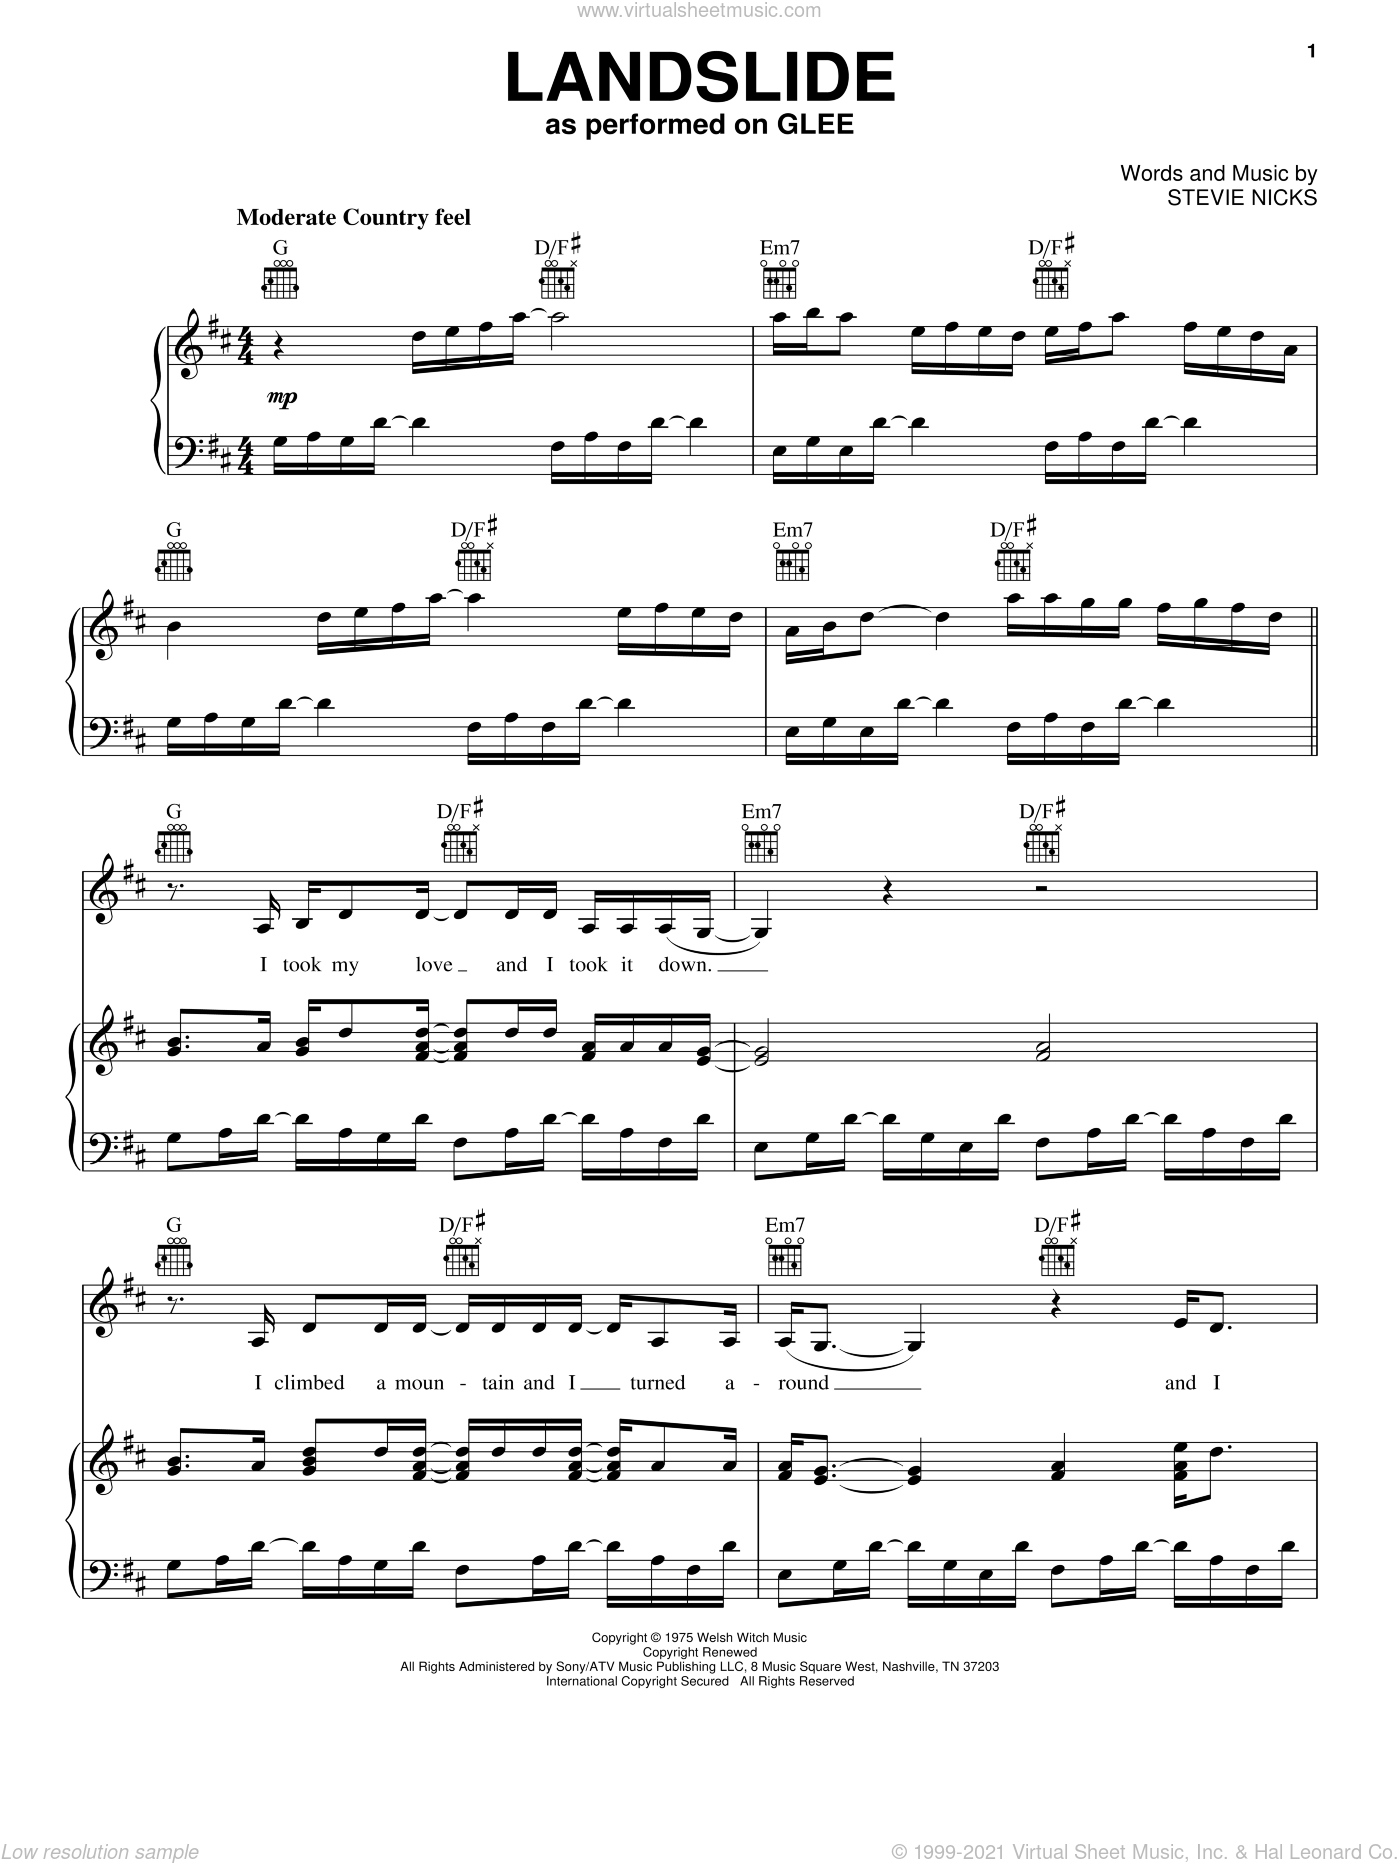 Landslide sheet music for voice, piano or guitar by Glee Cast, Dixie Chicks, Fleetwood Mac, Gwyneth Paltrow, Miscellaneous, The Smashing Pumpkins and Stevie Nicks, intermediate skill level